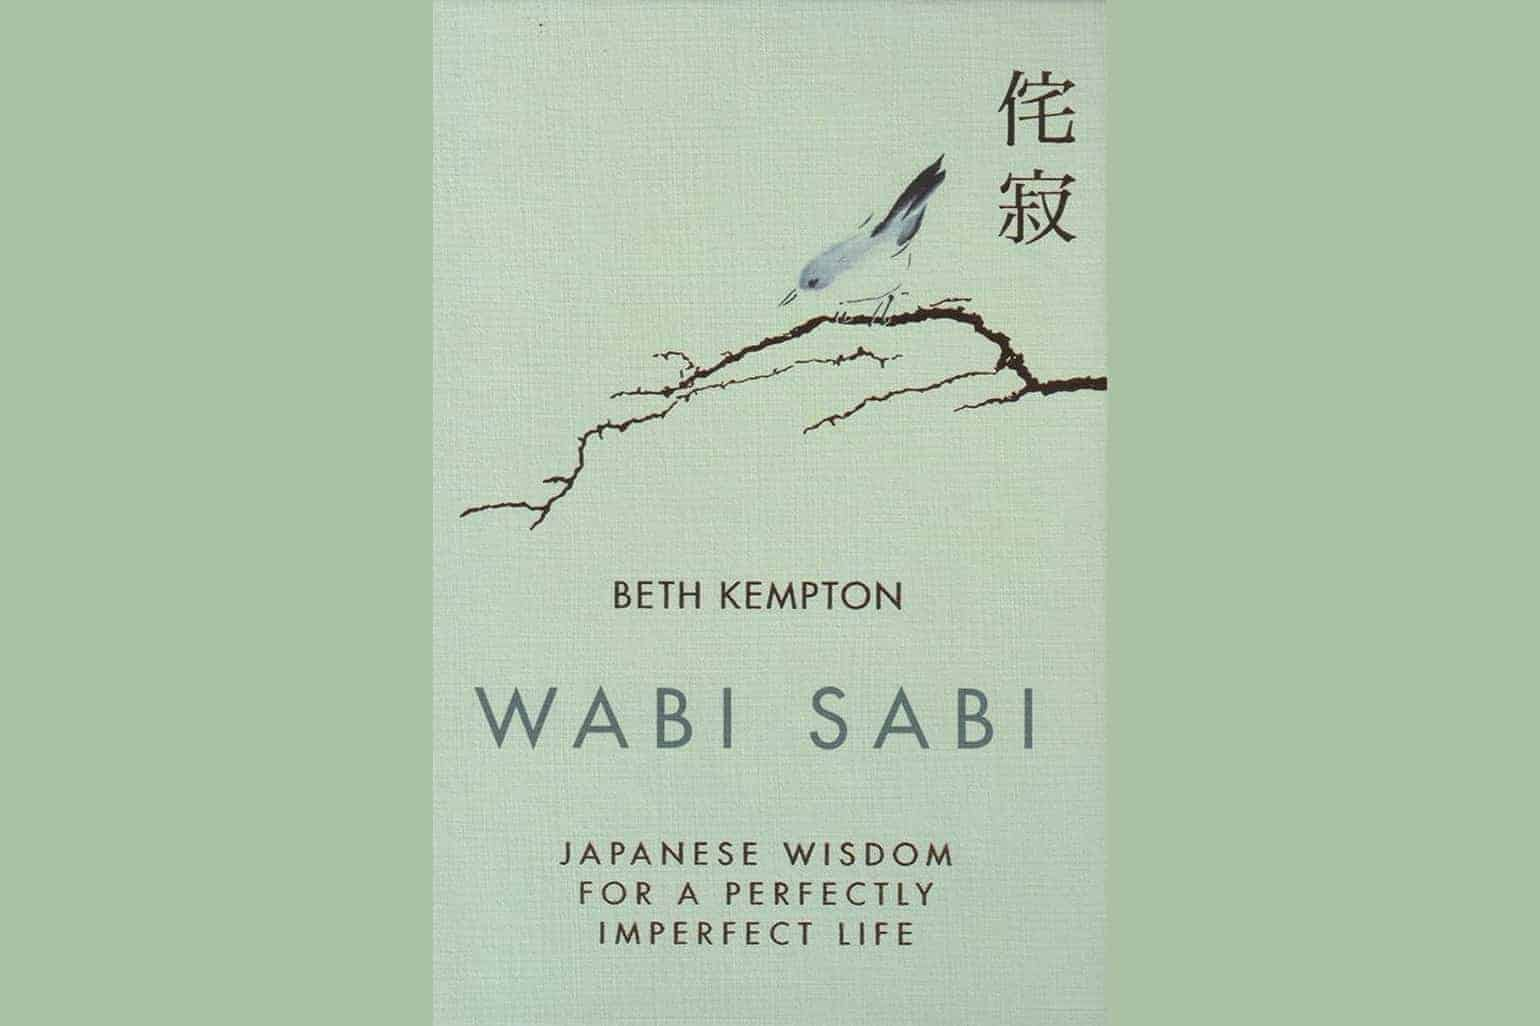 Wabi Sabi Japanese Wisdom For A Perfectly Imperfect Life By Beth Kempton